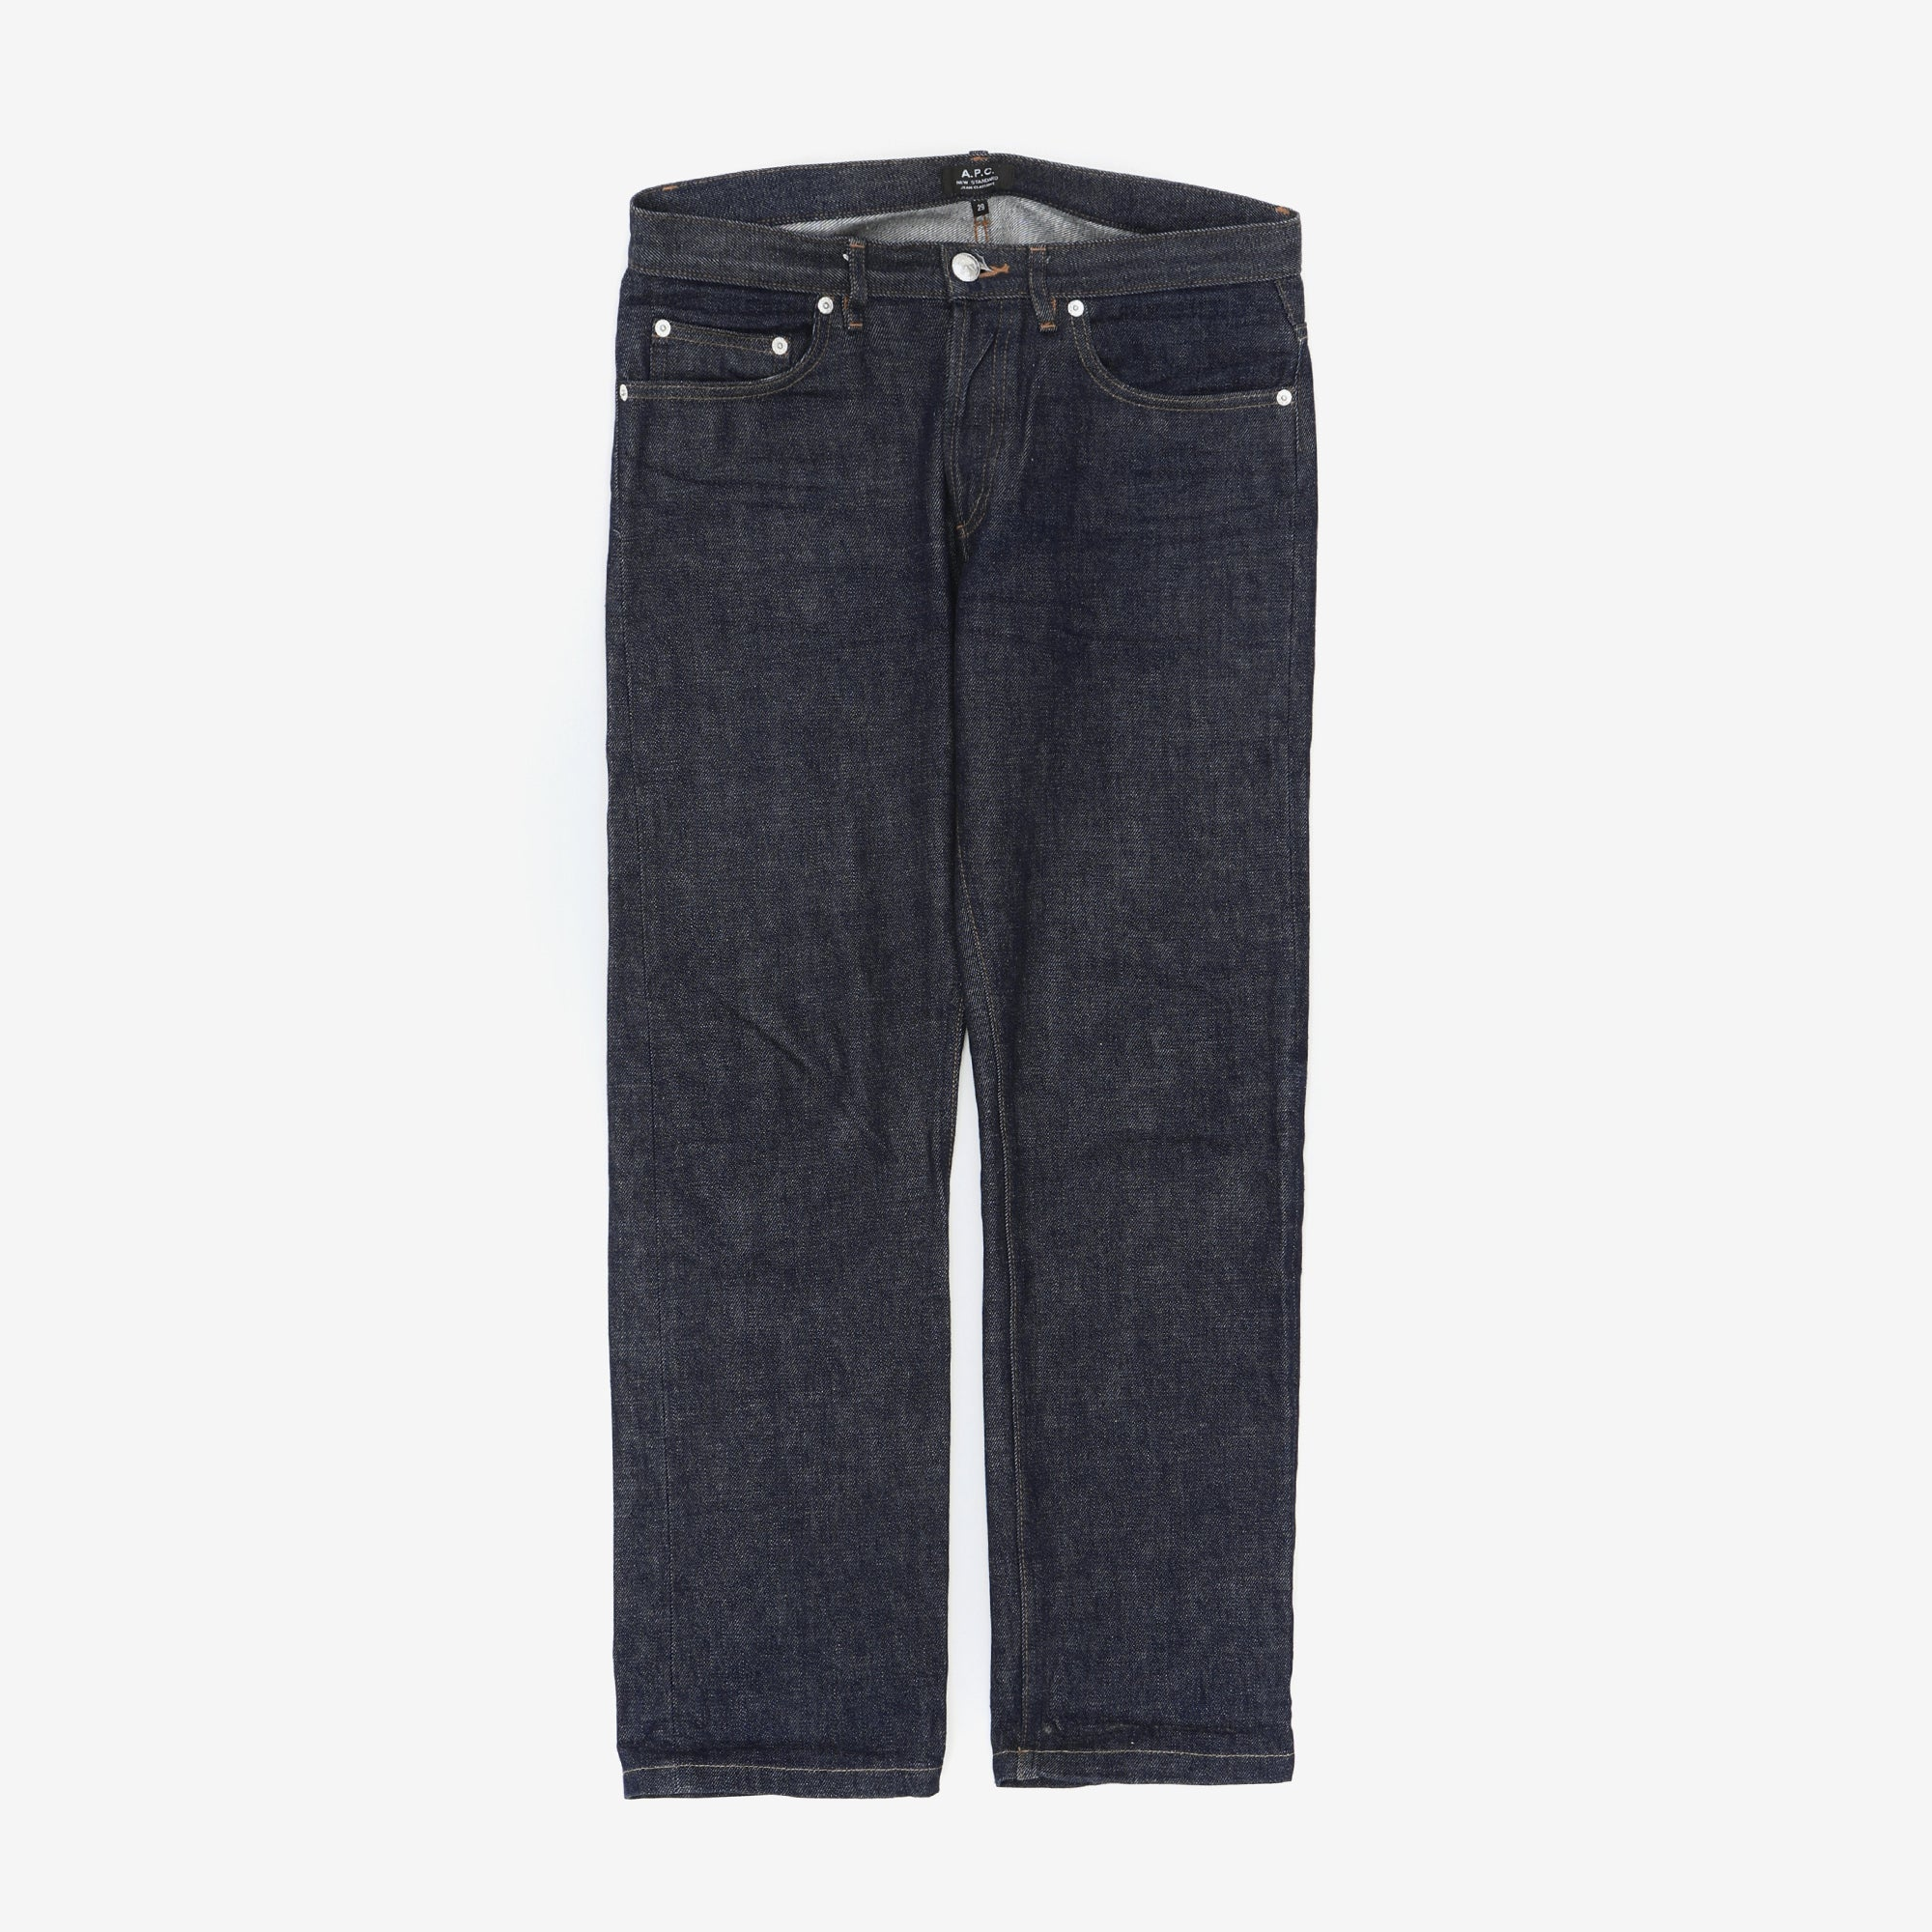 New Standard Jeans